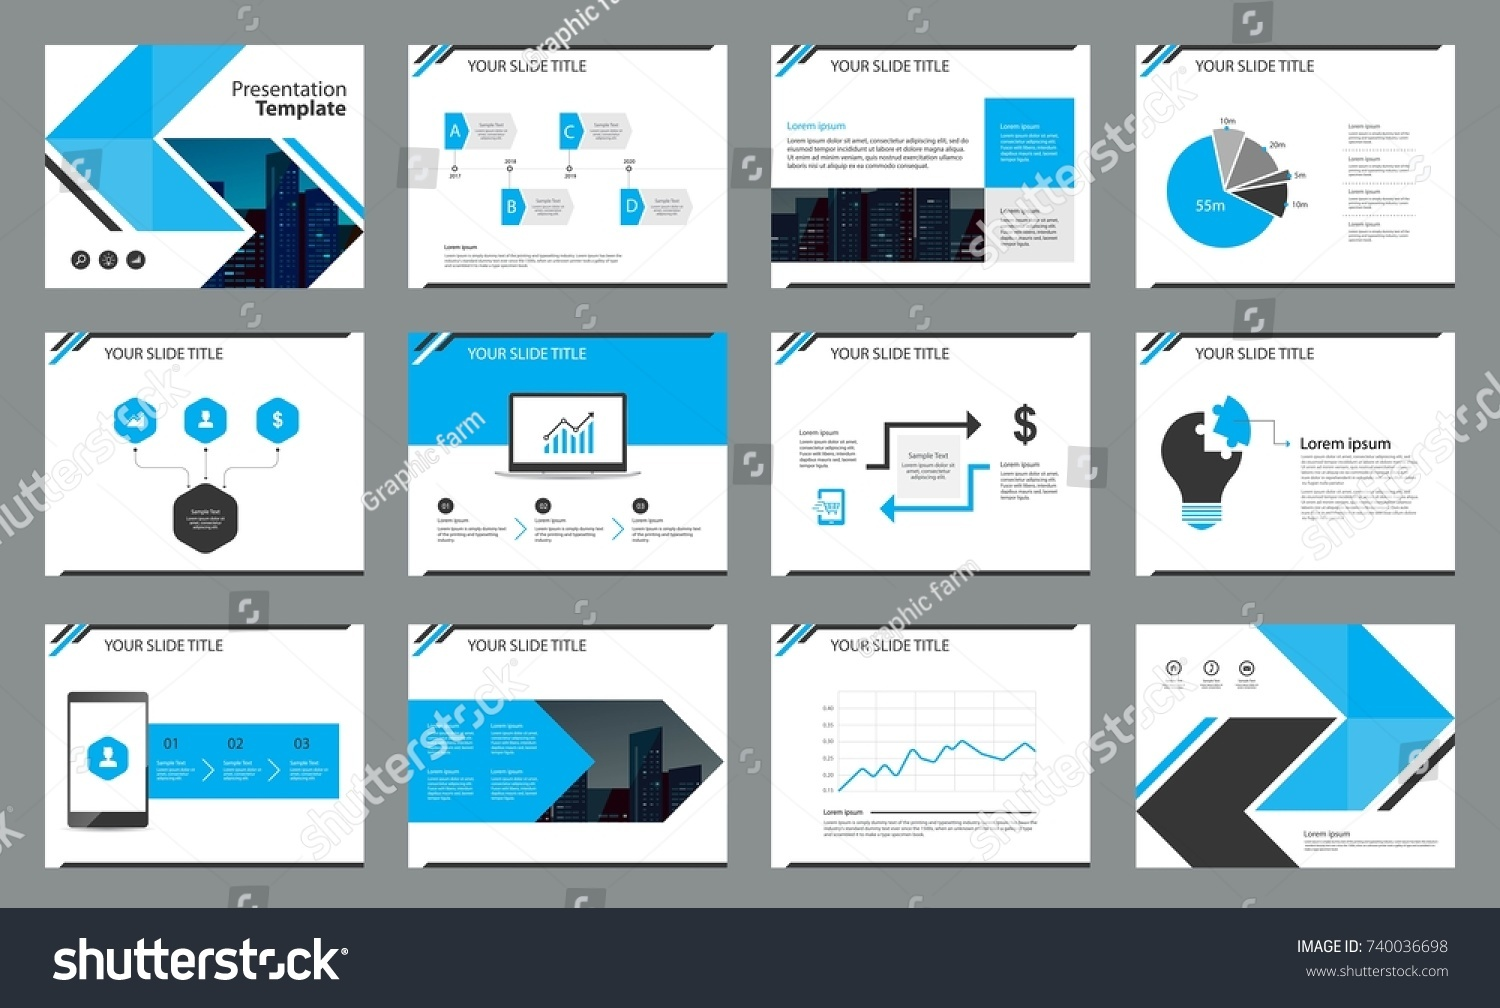 page design business presentation template report stock vector, Presentation templates